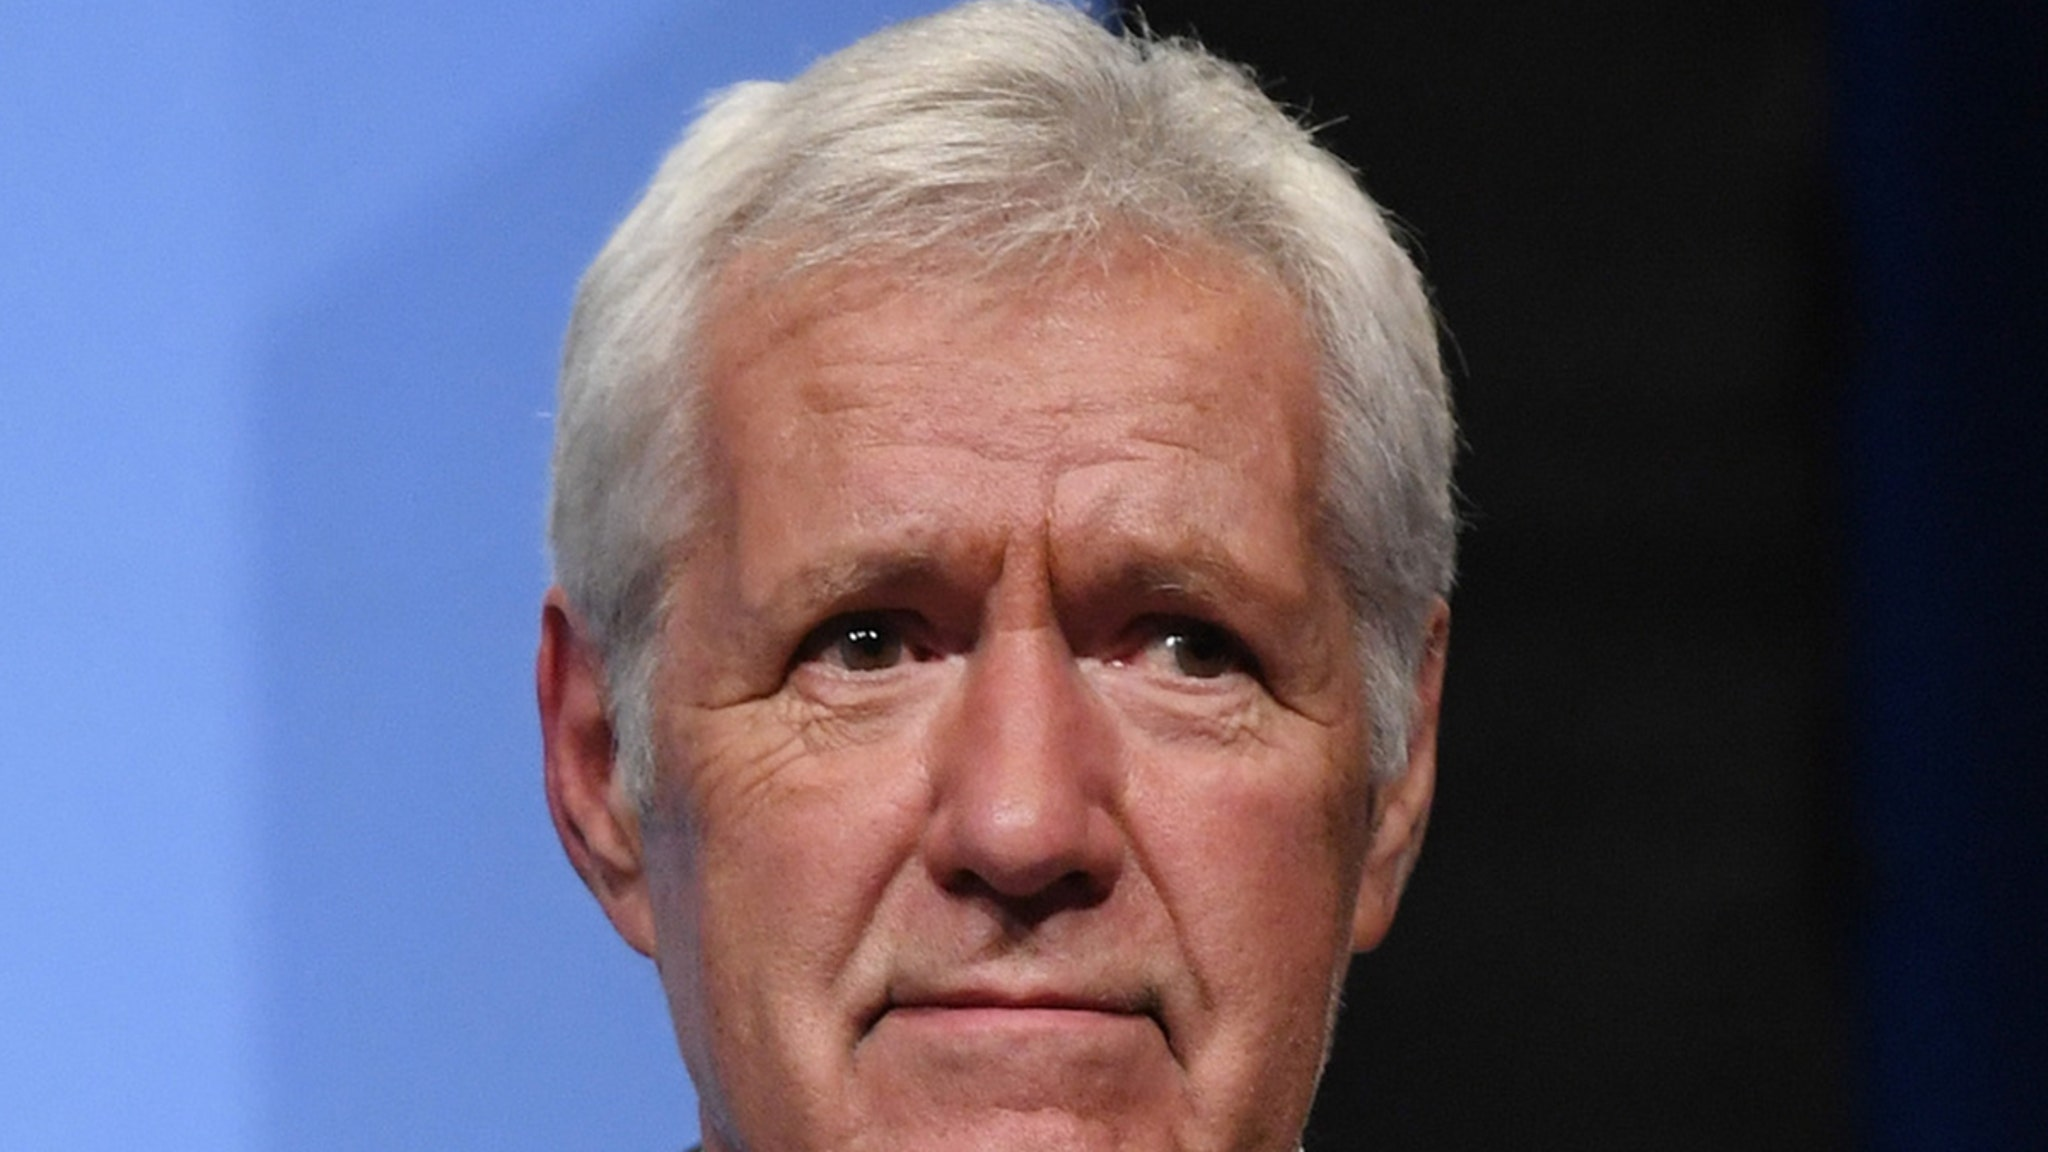 Alex Trebek 'He Will Forever Be An Inspiration' ... 'Jeopardy!' Pays Tribute